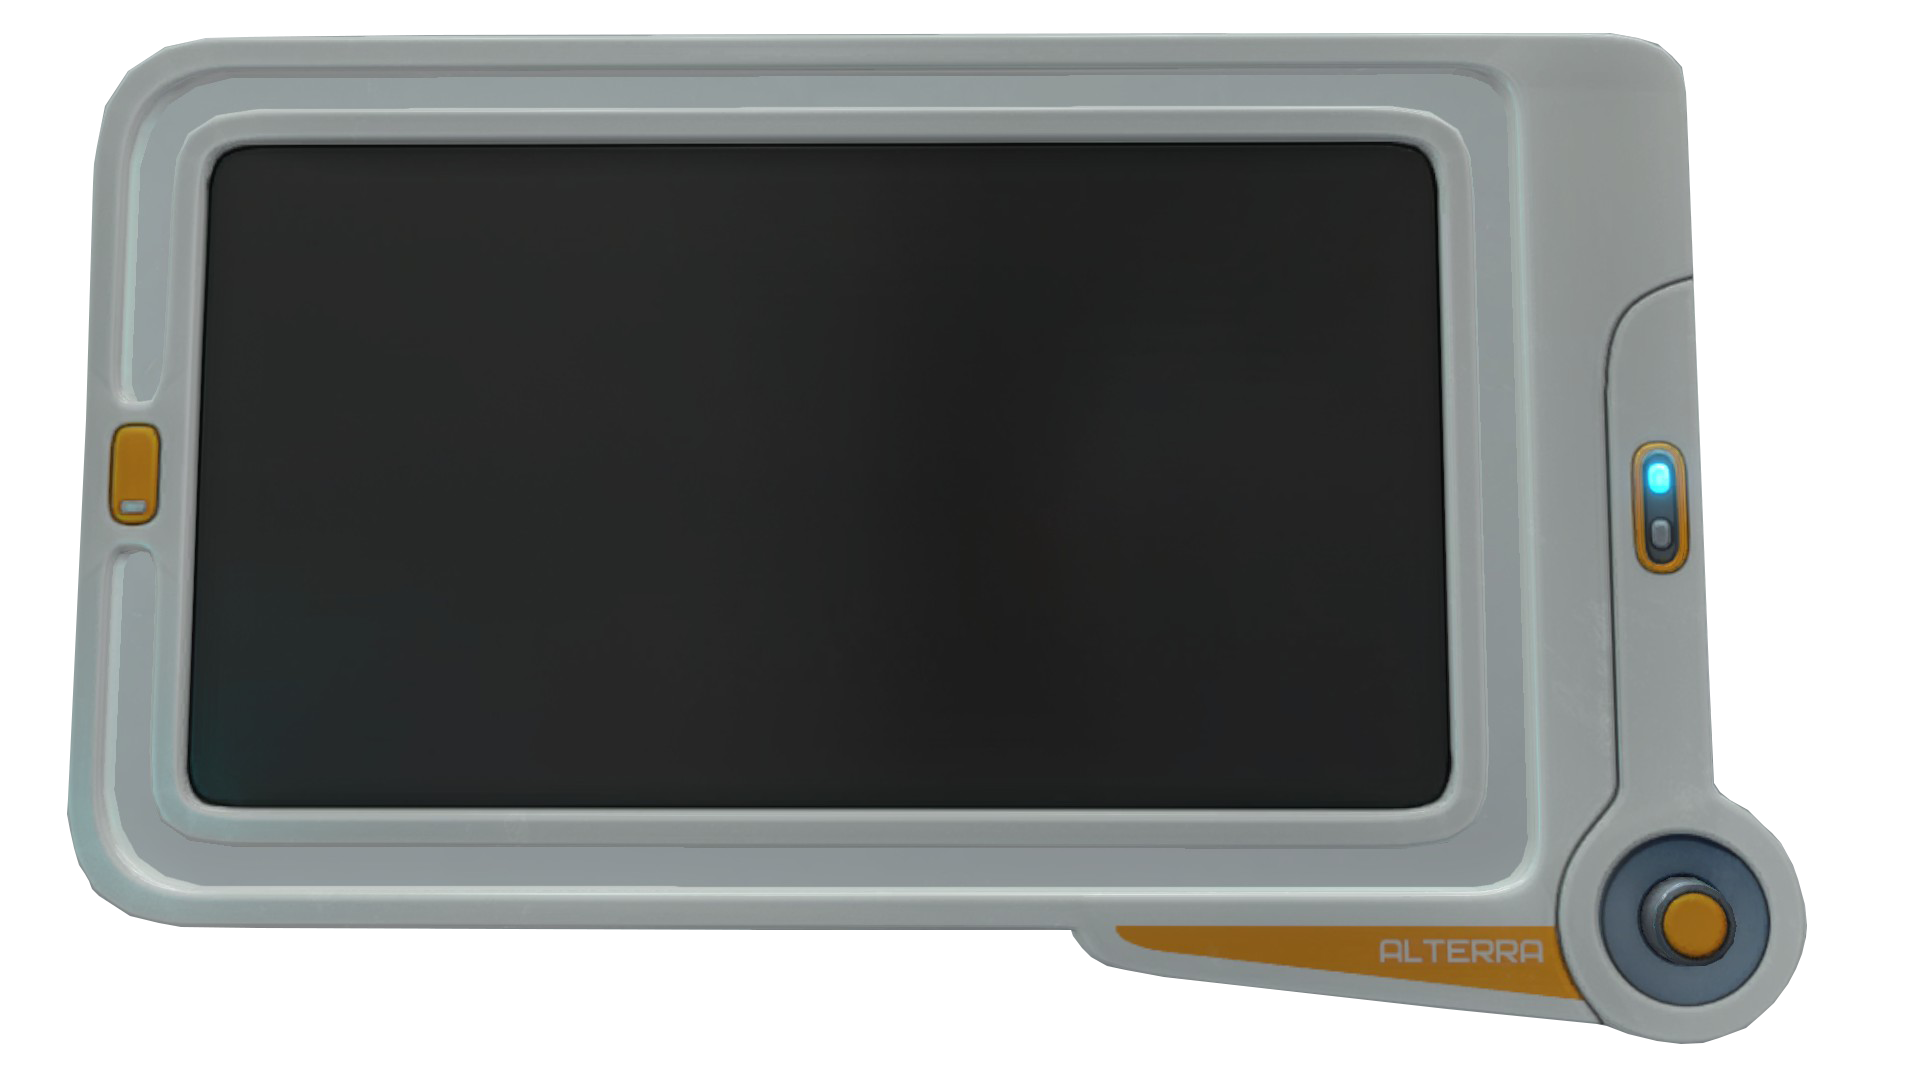 Picture Frame | Subnautica Wiki | FANDOM powered by Wikia